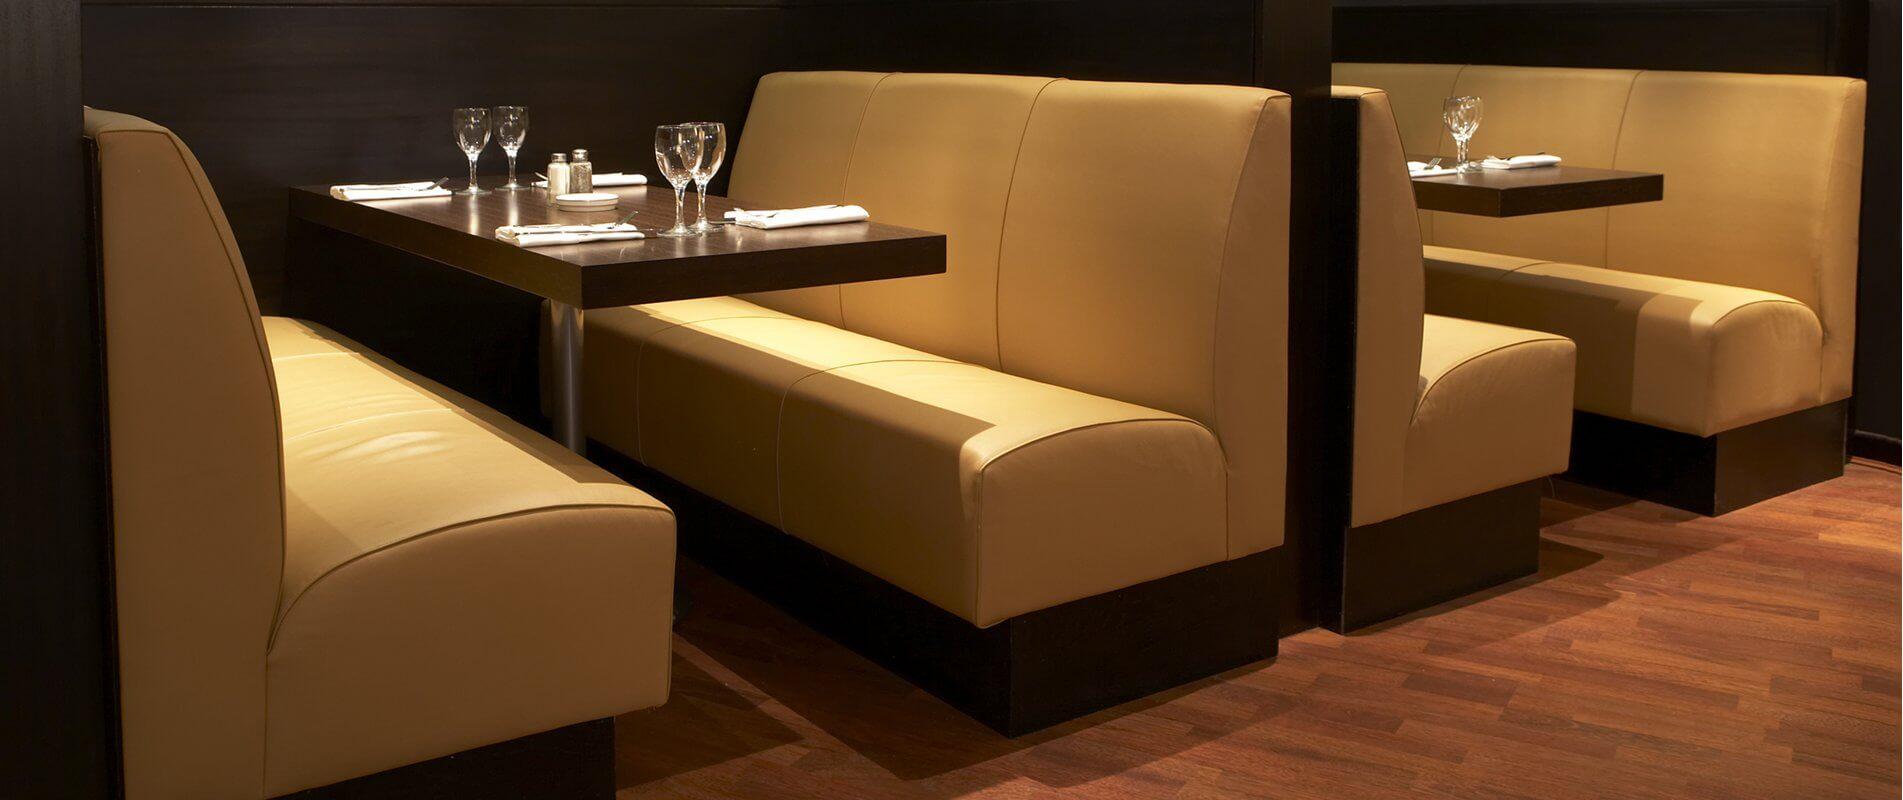 Booth Seating Melbourne Anm Cafe Amp Hospitality Furniture Melbourne